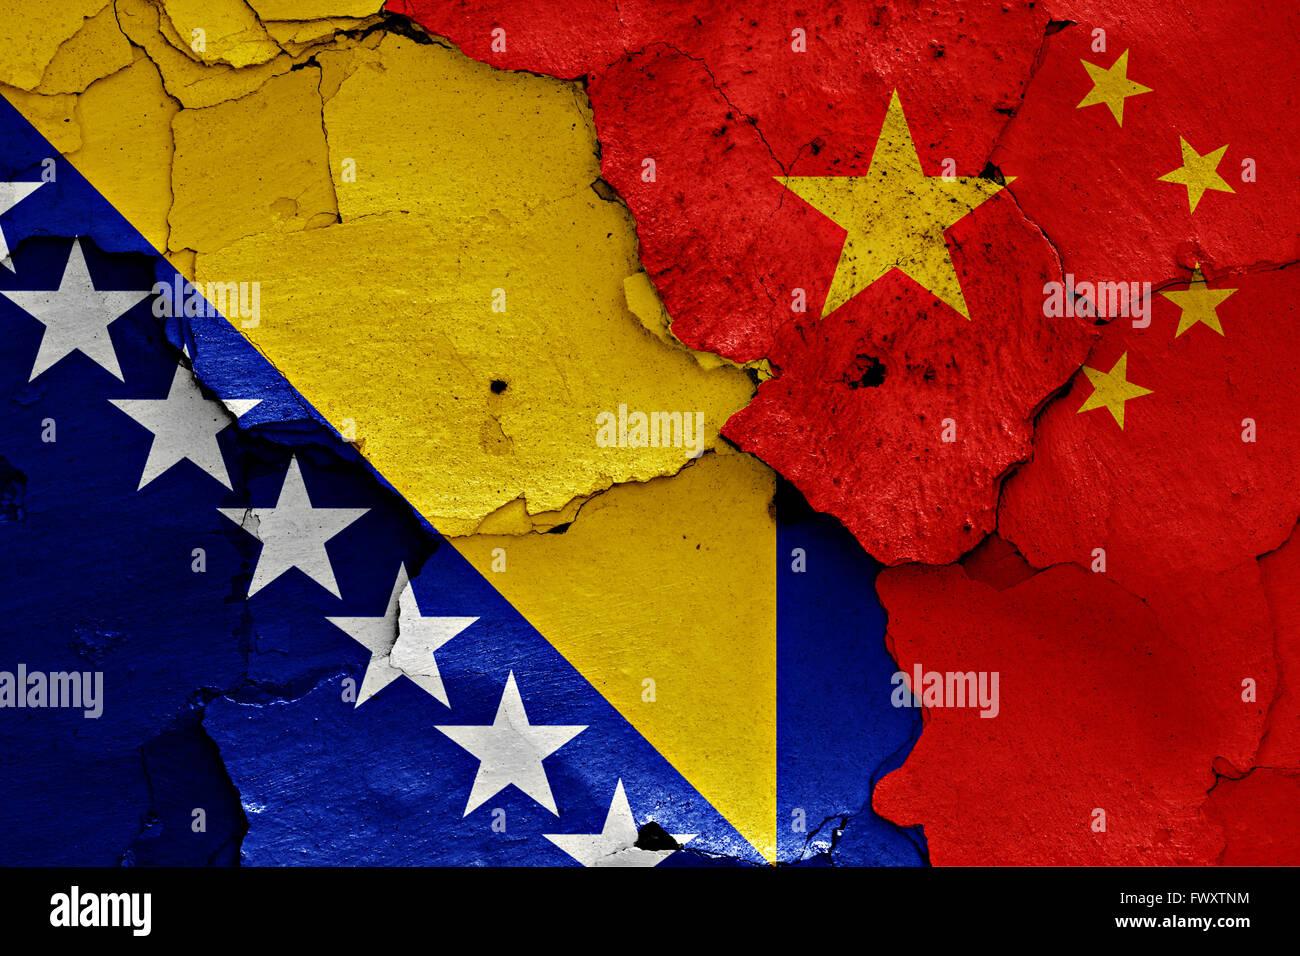 flags of Bosnia and Herzegovina and China painted on cracked wall - Stock Image